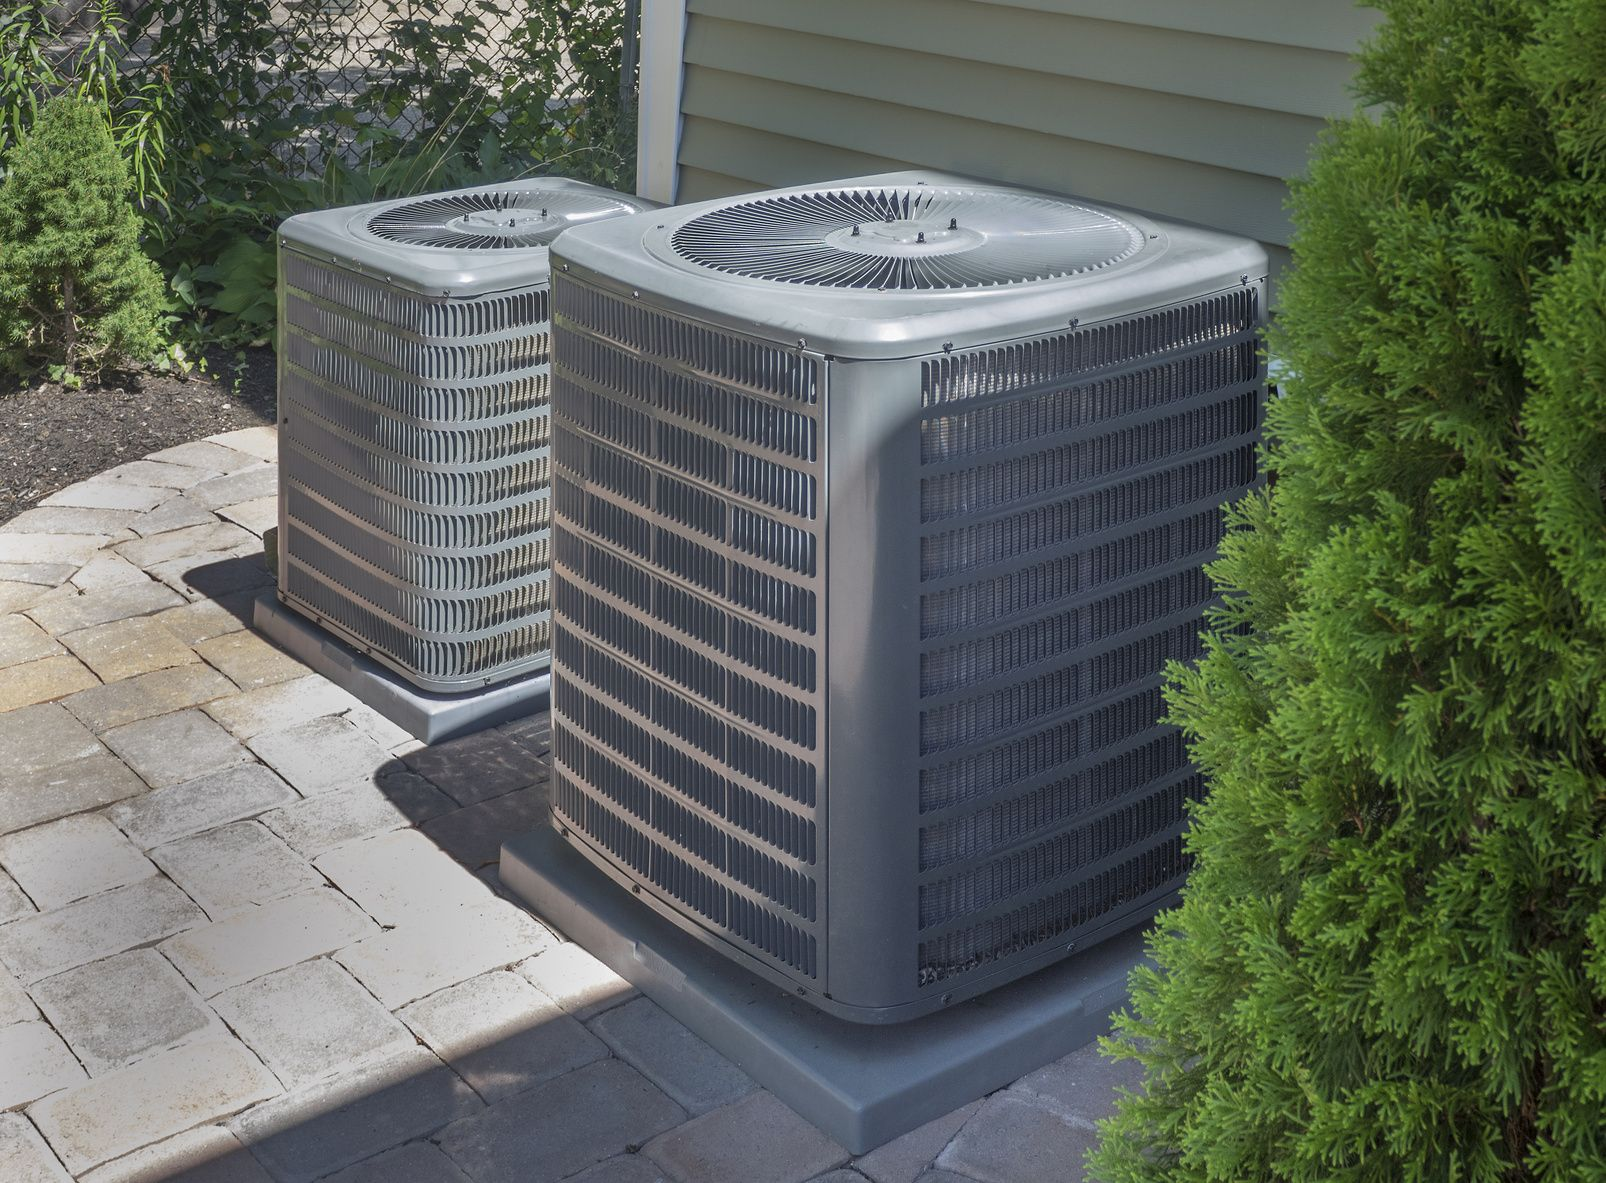 No upfront cost! A new energy efficient HVAC unit can save